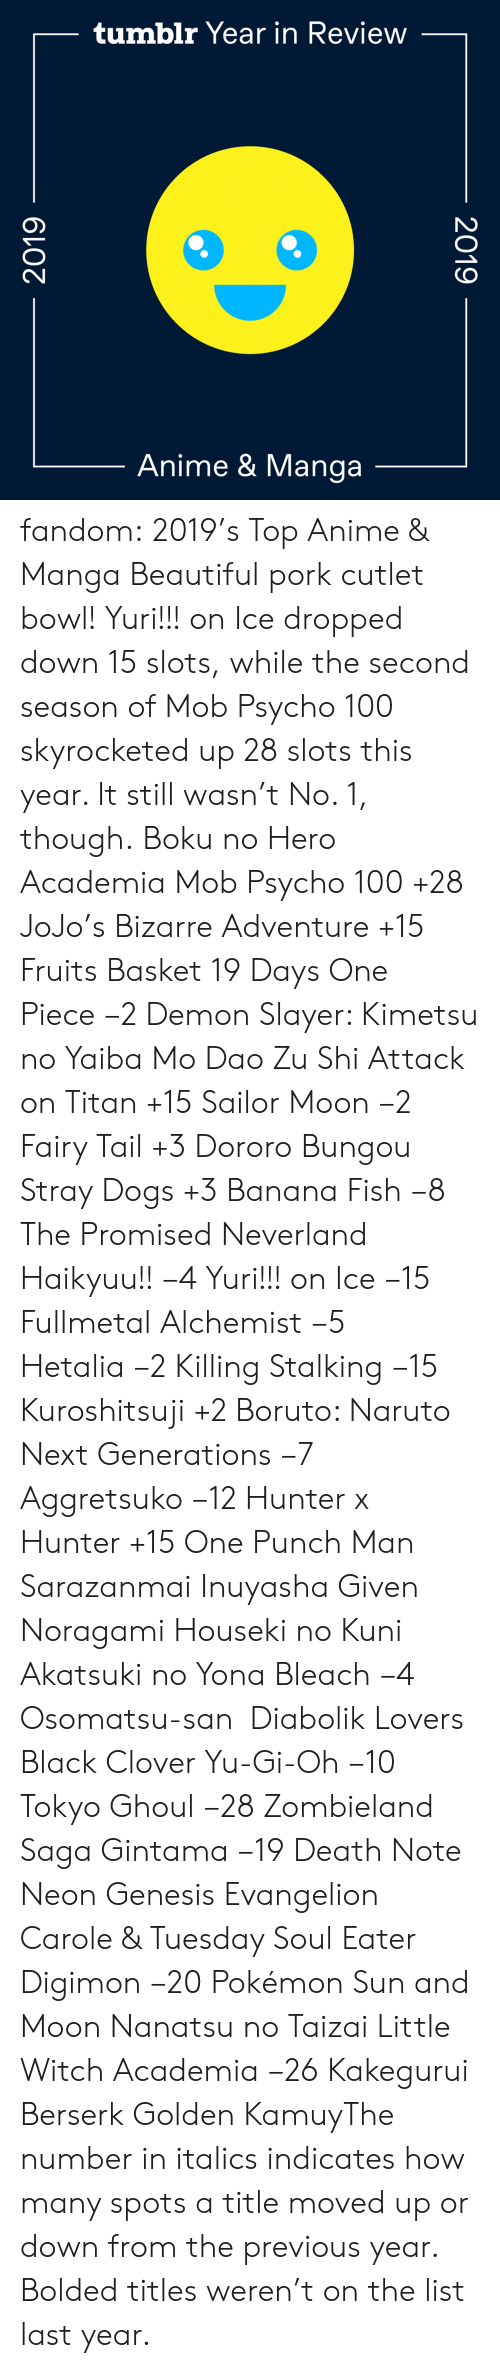 Naruto: tumblr Year in Review  Anime & Manga  2019  2019 fandom:  2019's Top Anime & Manga  Beautiful pork cutlet bowl! Yuri!!! on Ice dropped down 15 slots, while the second season of Mob Psycho 100 skyrocketed up 28 slots this year. It still wasn't No. 1, though.  Boku no Hero Academia  Mob Psycho 100 +28  JoJo's Bizarre Adventure +15  Fruits Basket  19 Days  One Piece −2  Demon Slayer: Kimetsu no Yaiba  Mo Dao Zu Shi  Attack on Titan +15  Sailor Moon −2  Fairy Tail +3  Dororo  Bungou Stray Dogs +3  Banana Fish −8  The Promised Neverland  Haikyuu!! −4  Yuri!!! on Ice −15  Fullmetal Alchemist −5  Hetalia −2  Killing Stalking −15  Kuroshitsuji +2  Boruto: Naruto Next Generations −7  Aggretsuko −12  Hunter x Hunter +15  One Punch Man  Sarazanmai  Inuyasha  Given  Noragami  Houseki no Kuni  Akatsuki no Yona  Bleach −4  Osomatsu-san   Diabolik Lovers  Black Clover  Yu-Gi-Oh −10  Tokyo Ghoul −28  Zombieland Saga  Gintama −19  Death Note  Neon Genesis Evangelion  Carole & Tuesday  Soul Eater  Digimon −20  Pokémon Sun and Moon  Nanatsu no Taizai  Little Witch Academia −26  Kakegurui  Berserk Golden KamuyThe number in italics indicates how many spots a title moved up or down from the previous year. Bolded titles weren't on the list last year.